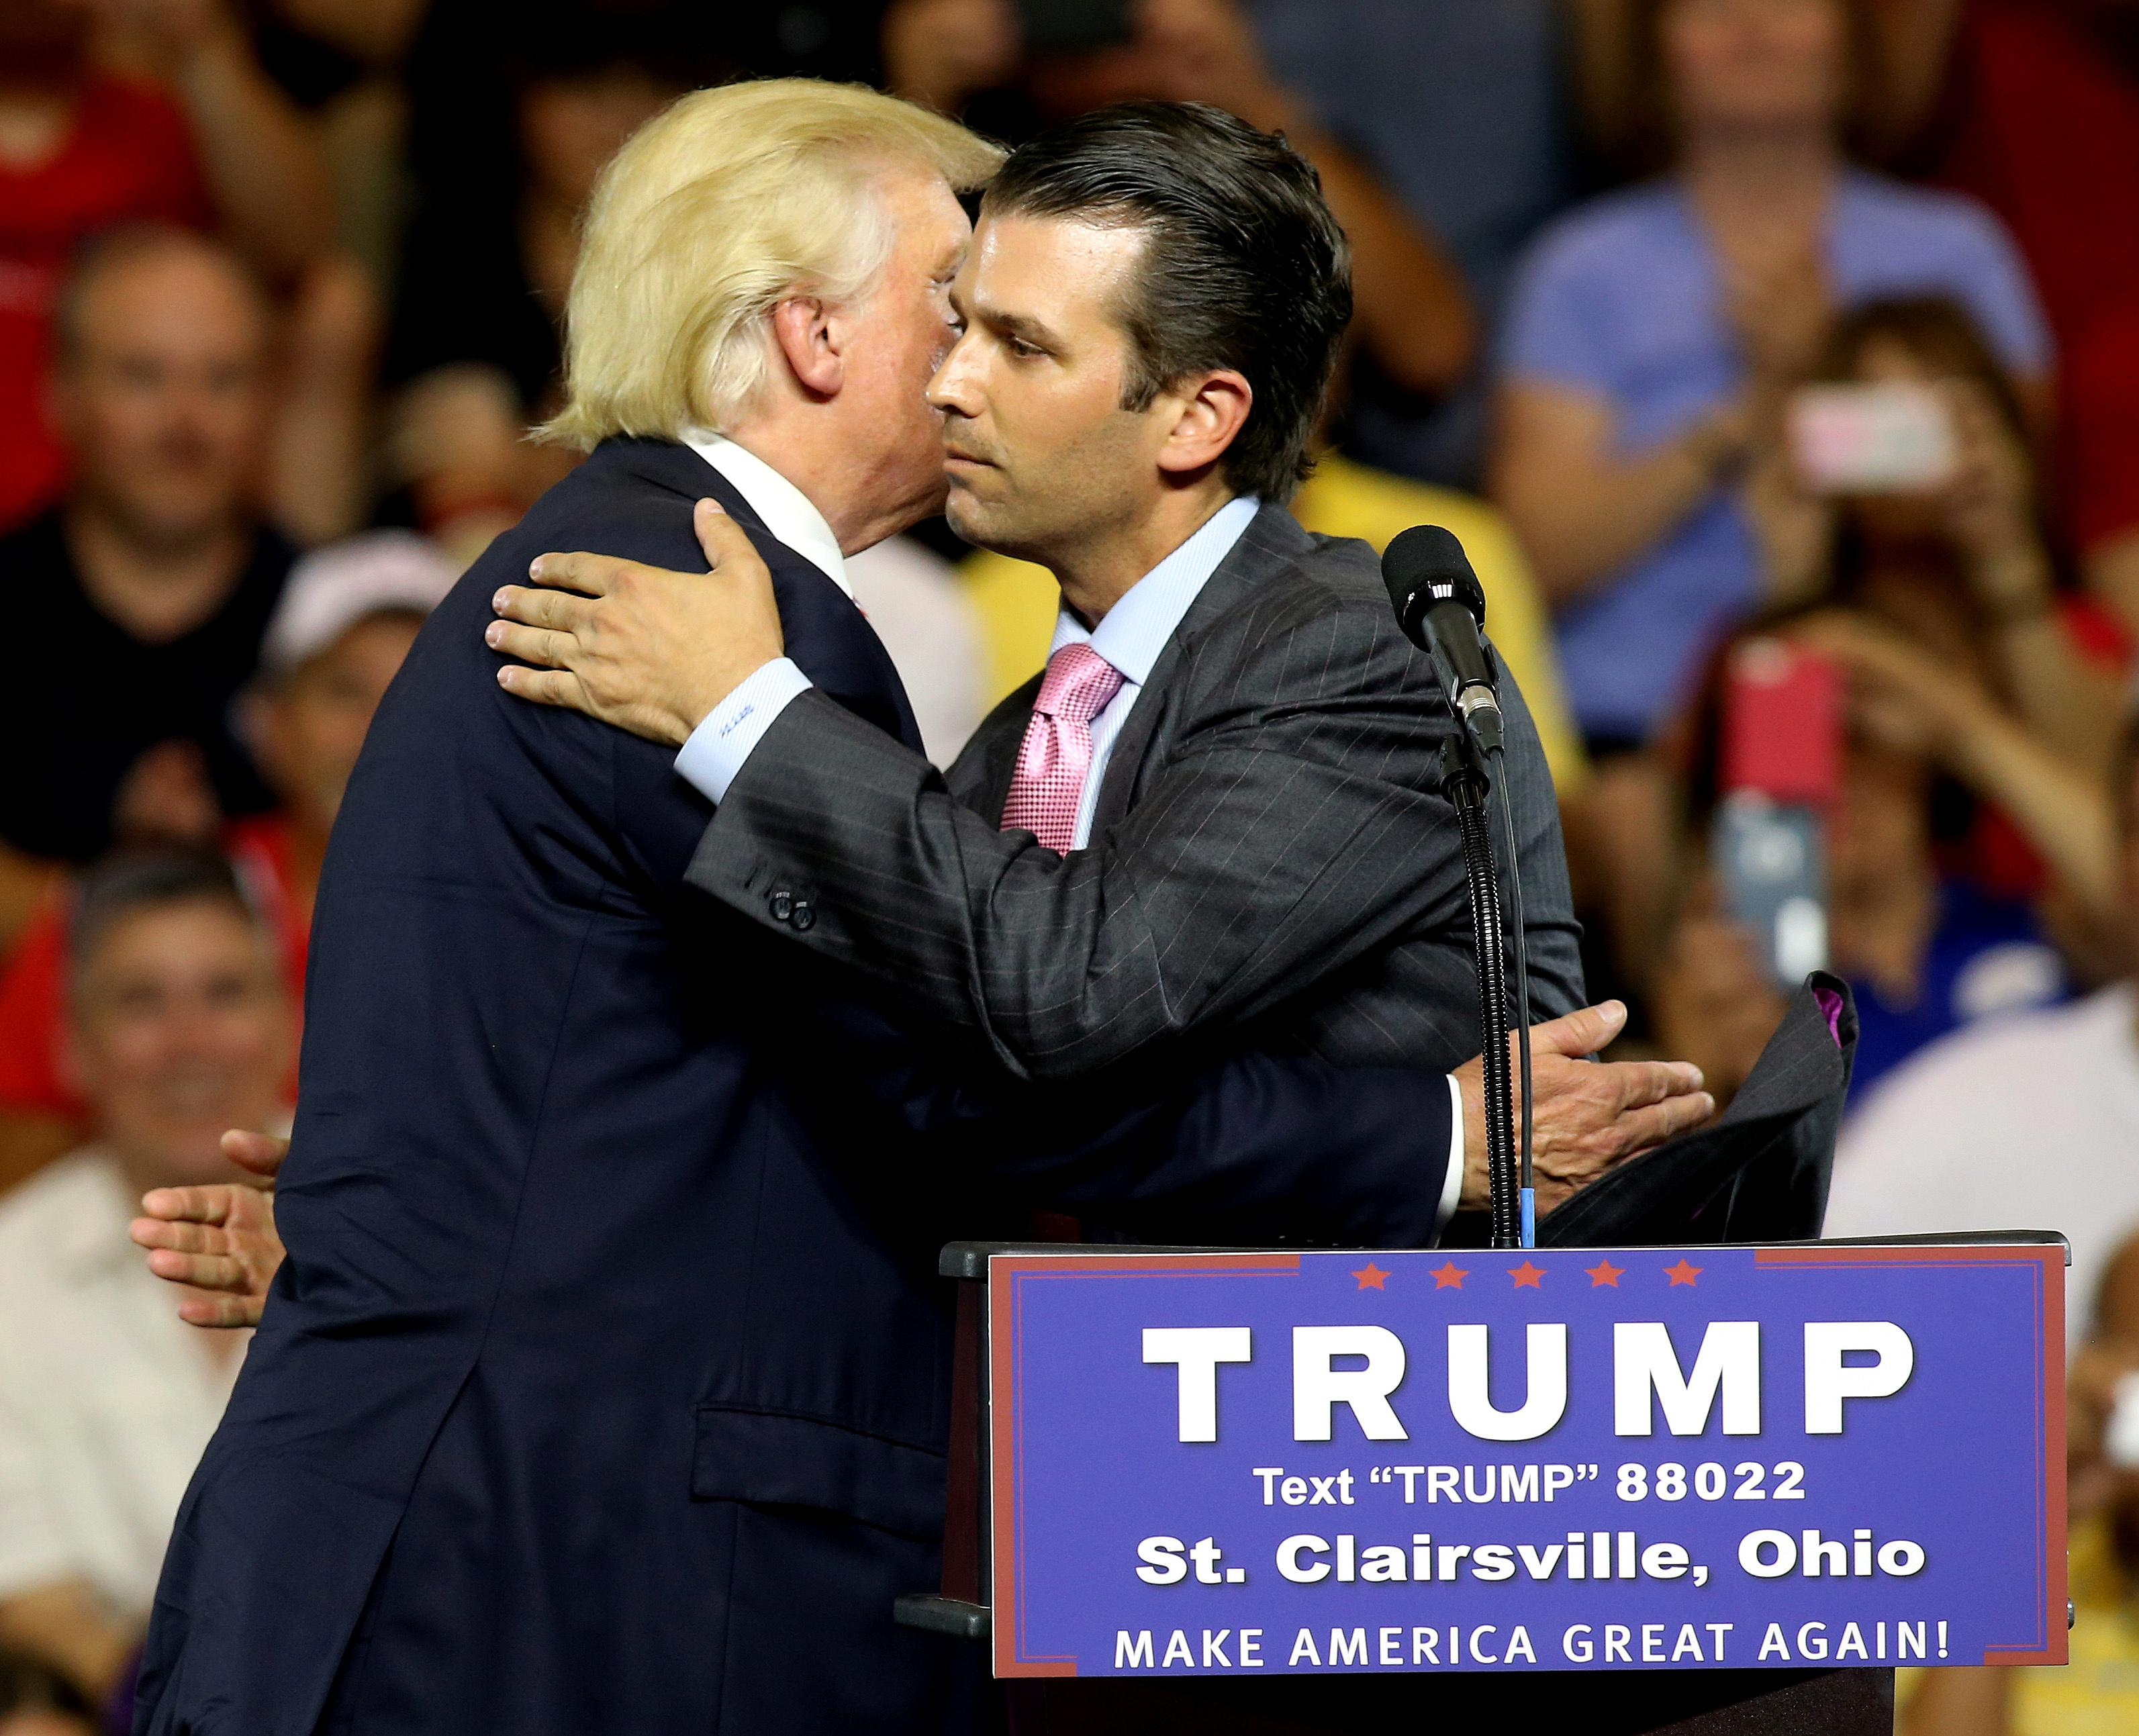 Trump Jr.'s Russia emails could trigger probe under election law